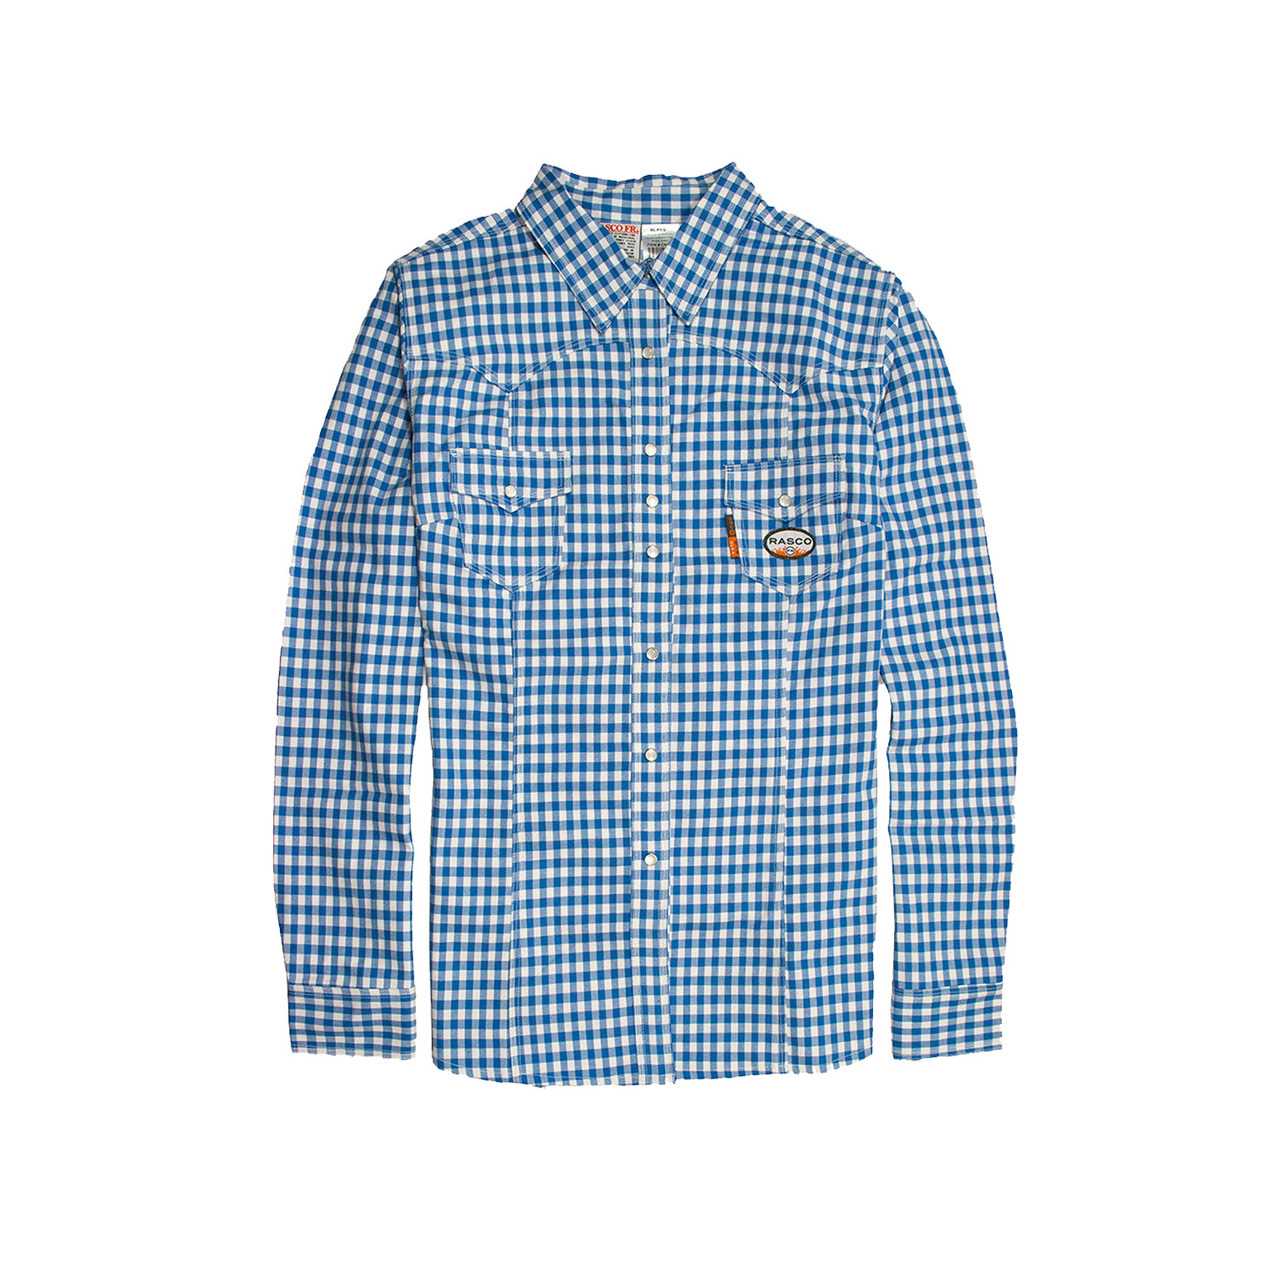 W-PLB762 Blue Plaid